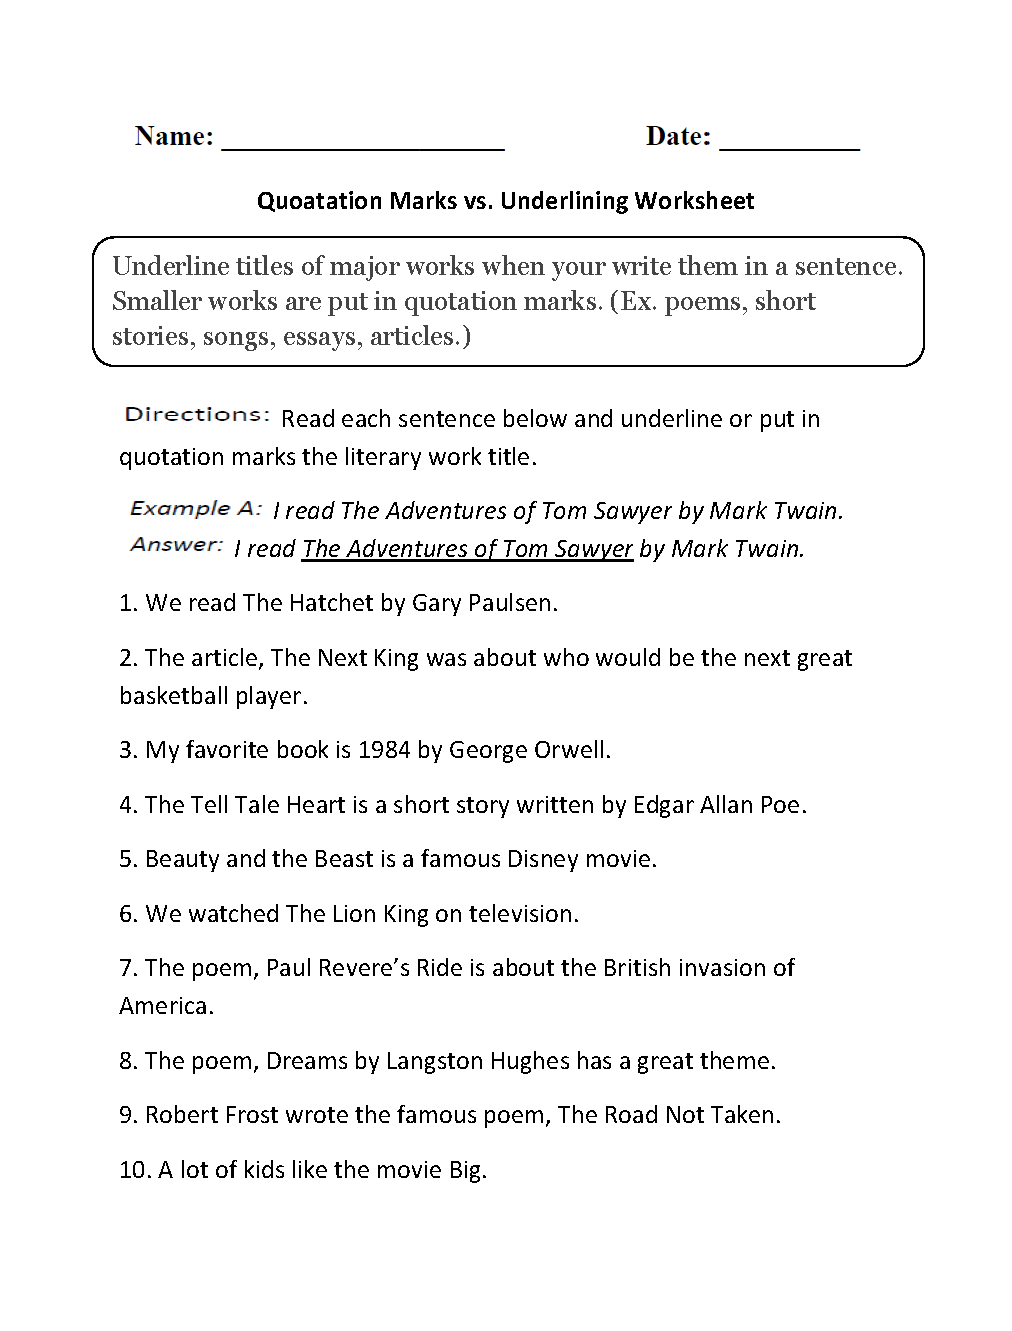 Worksheets Quotation Mark Worksheets quotation marks vs underlining worksheets grammar pinterest worksheets